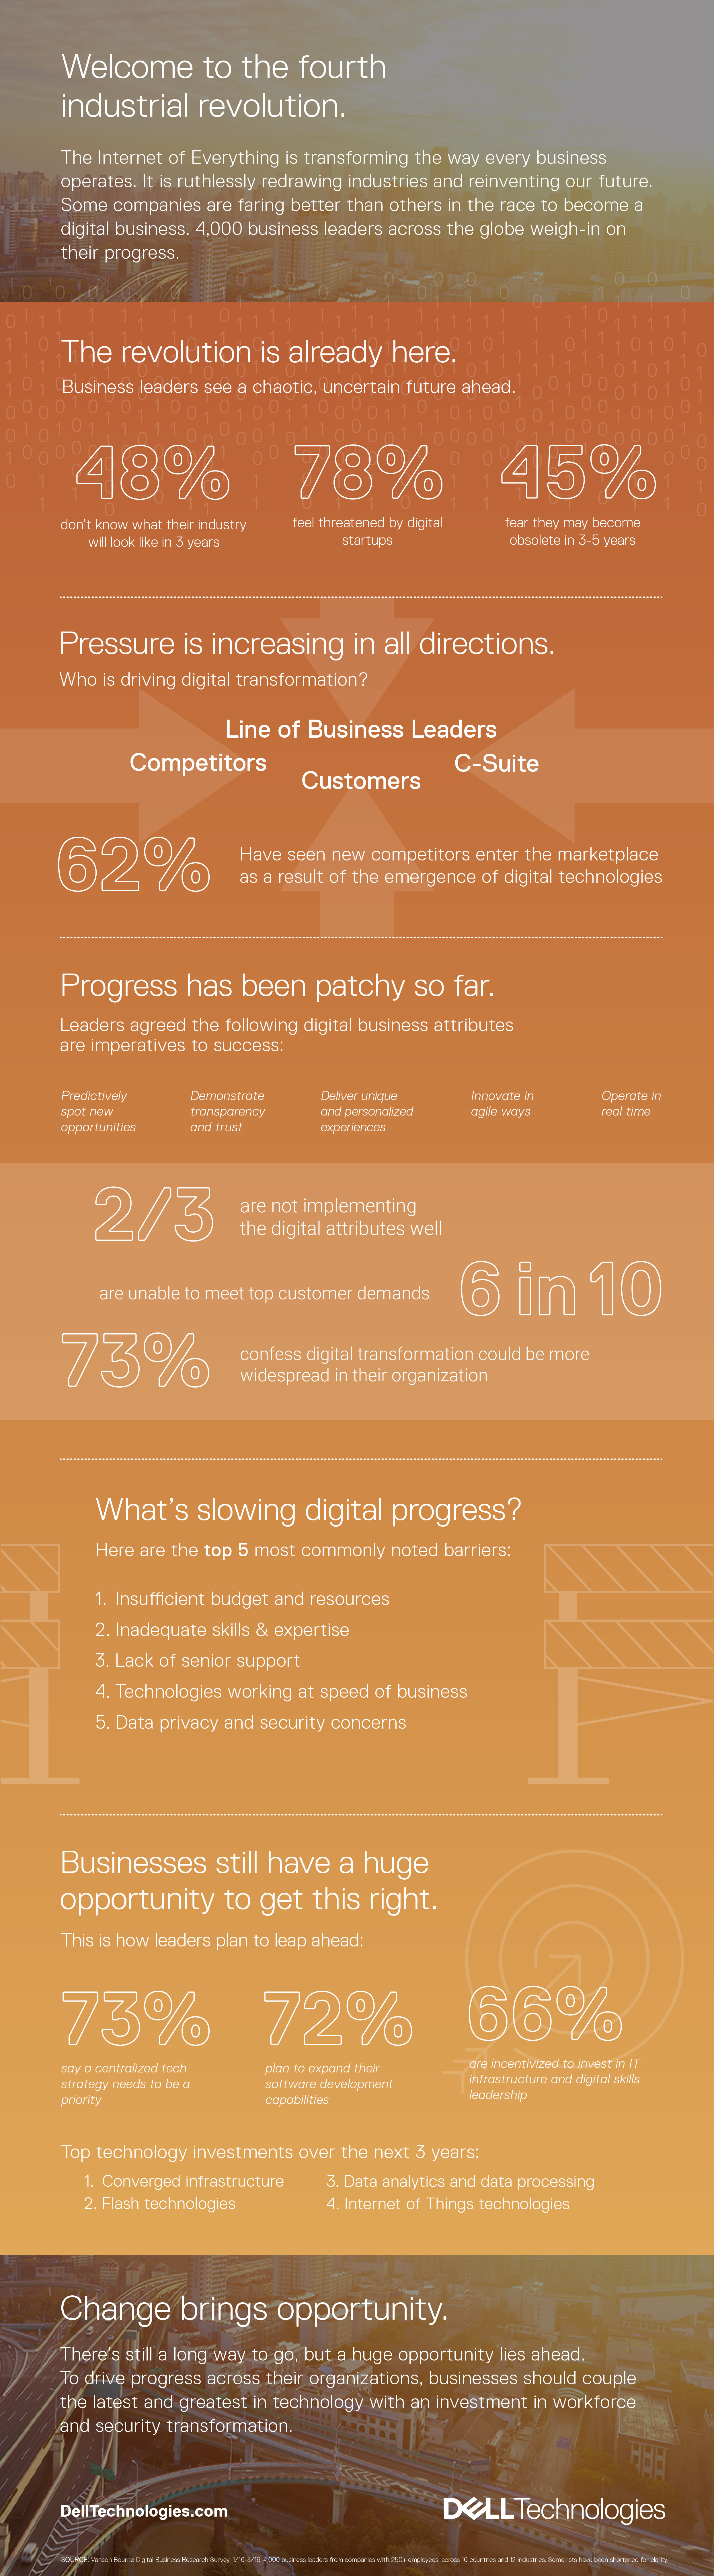 Dell Technologies Launches the Digital Transformation Index (Graphic: Business Wire)